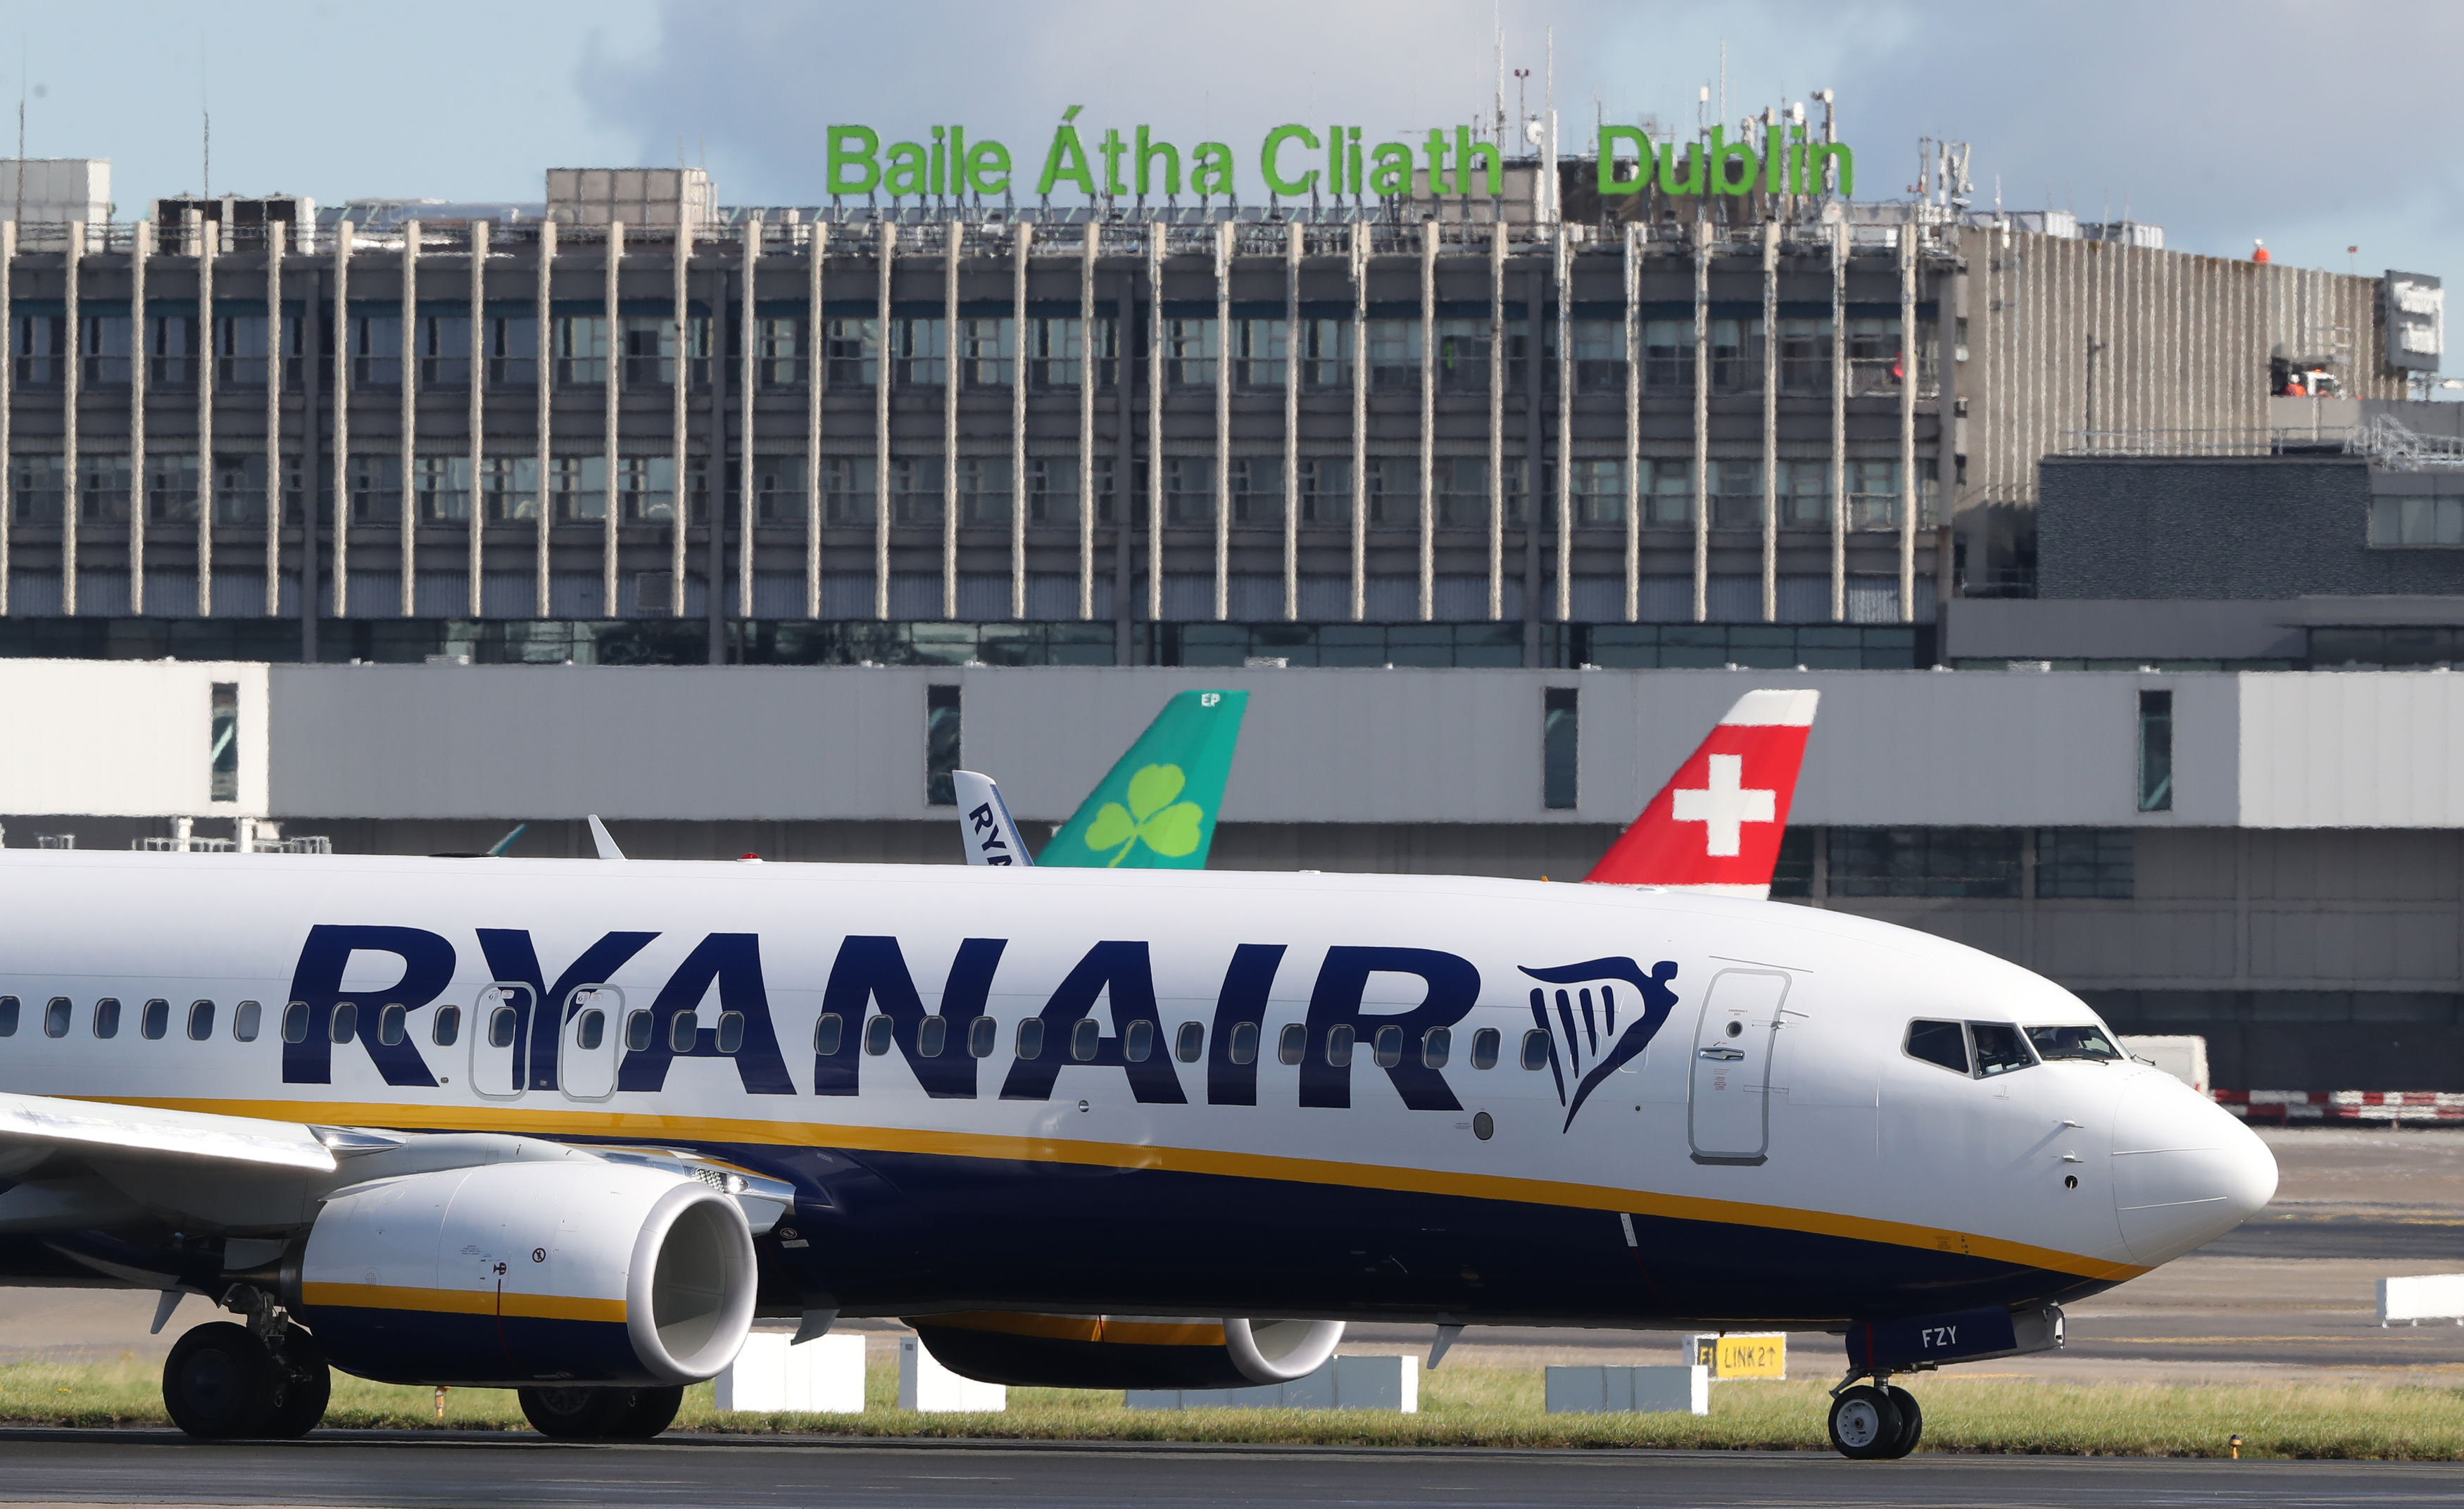 Ryanair has extended its flight cancellation plan in a move that will hit 400,000 customers. (Niall Carson/PA Wire)